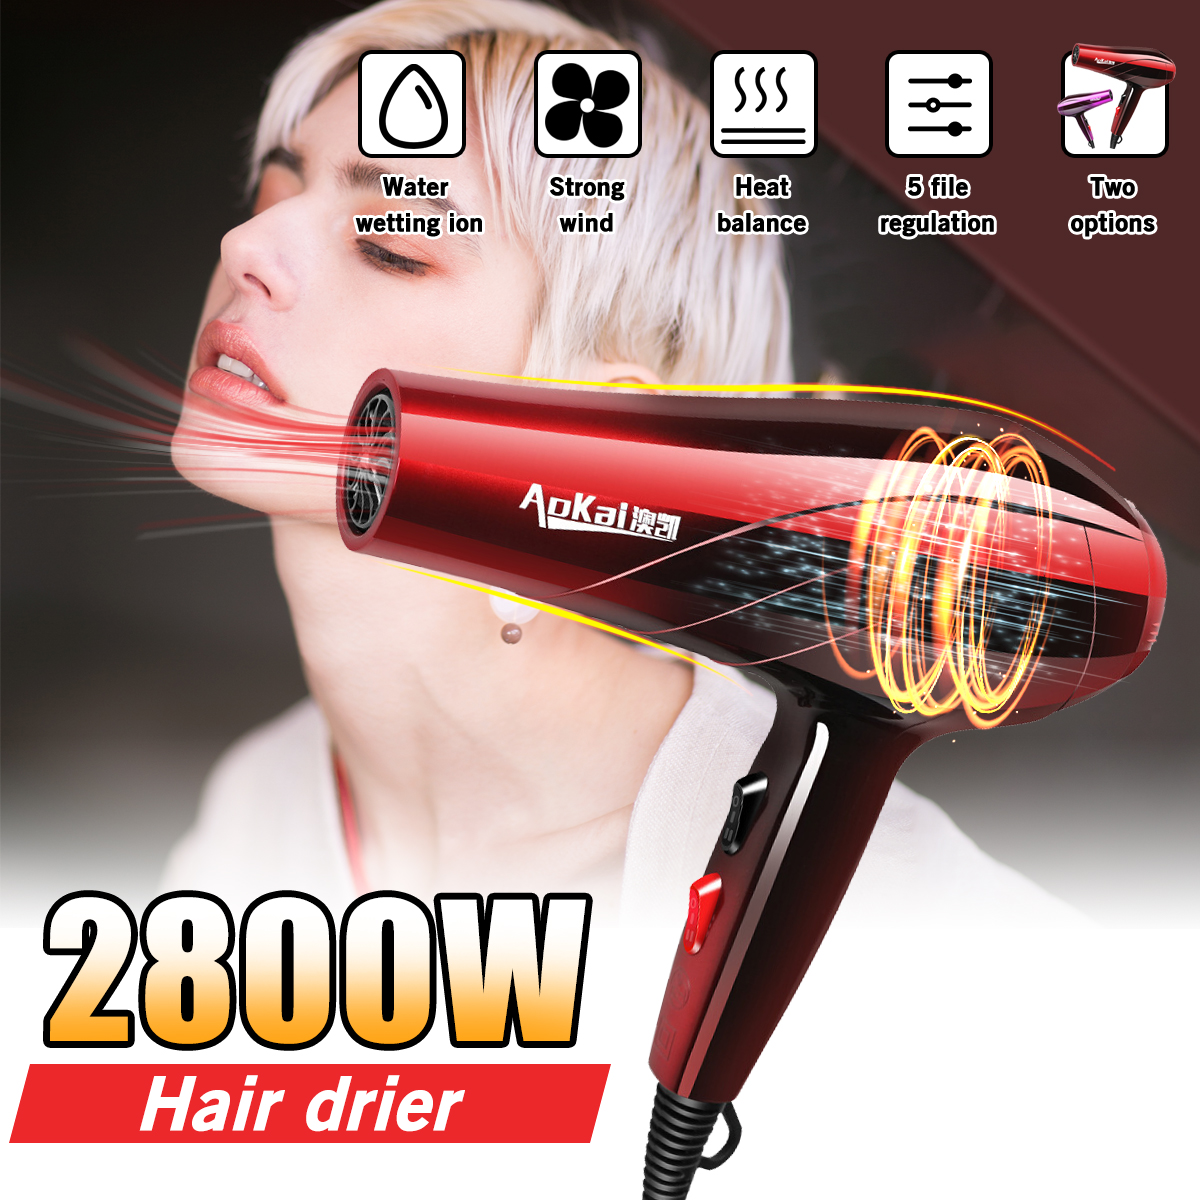 Electric Hair Dryer Hot Cold Wind 2800W Professional Salon Household Hairdressing Blow Hair Dryer Detachable Air Inlet AC Motor